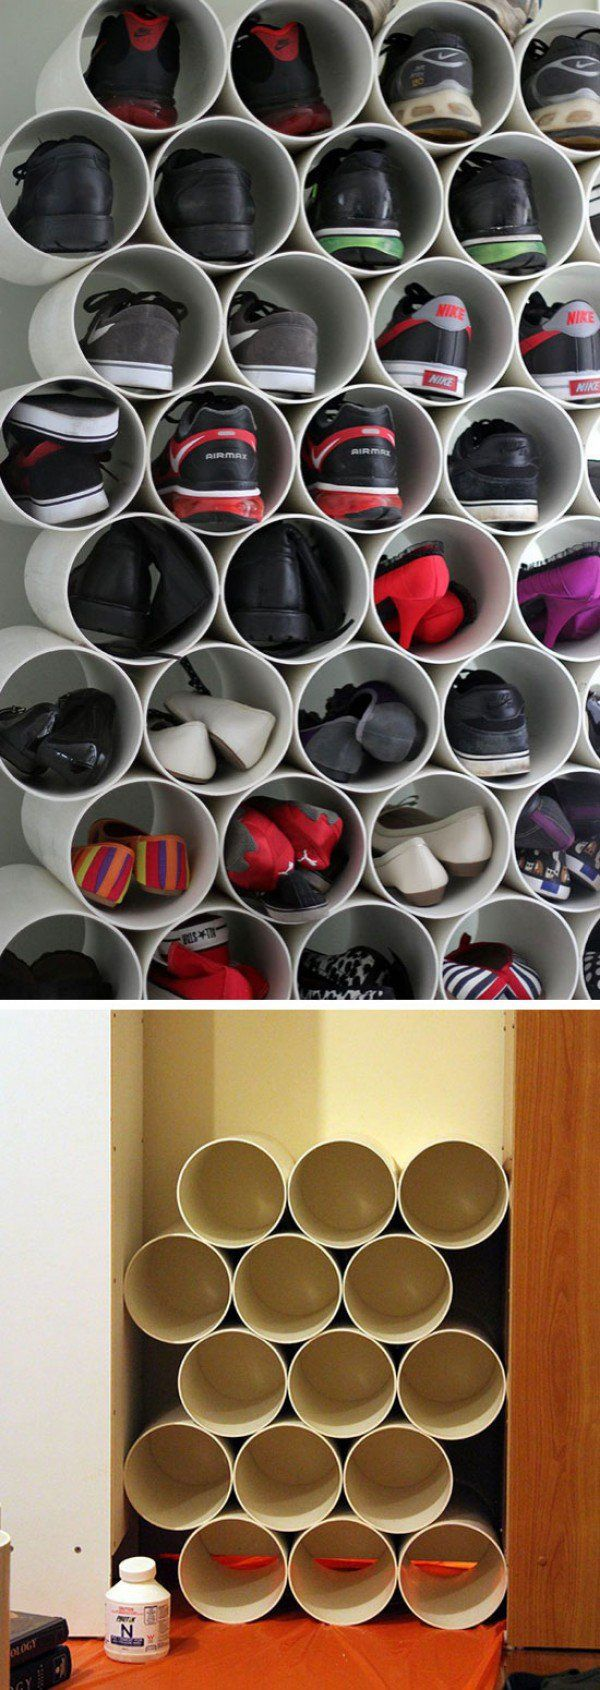 Check out this easy idea for a #DIY shoe rack using PVC pipes for #homedecor on a #budget #crafts @istandarddesign